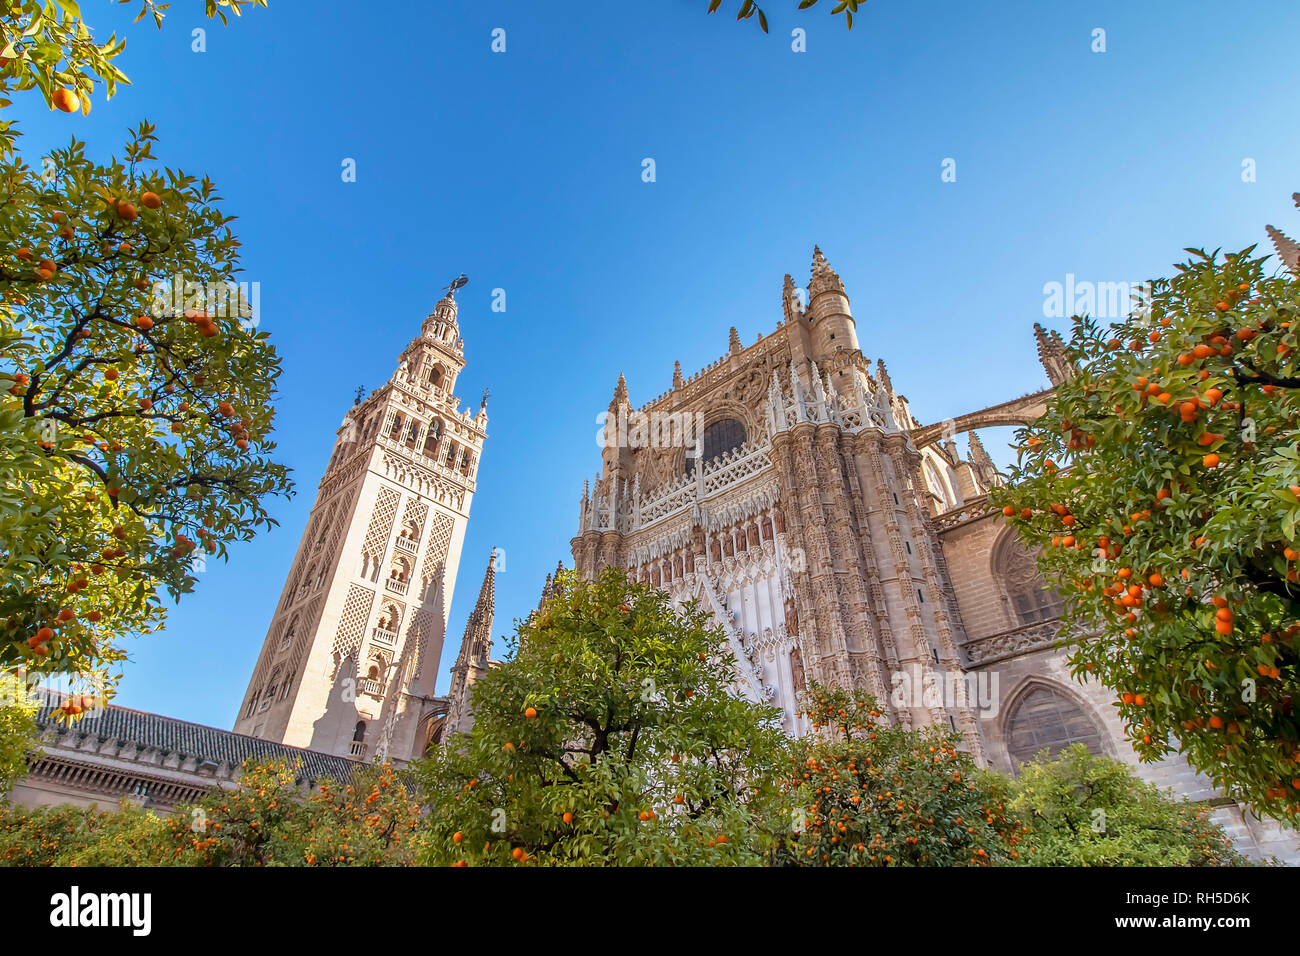 View of Seville Cathedral of Saint Mary of the See (Seville Cathedral)  with Giralda tower and oranges trees in the foreground - Stock Image